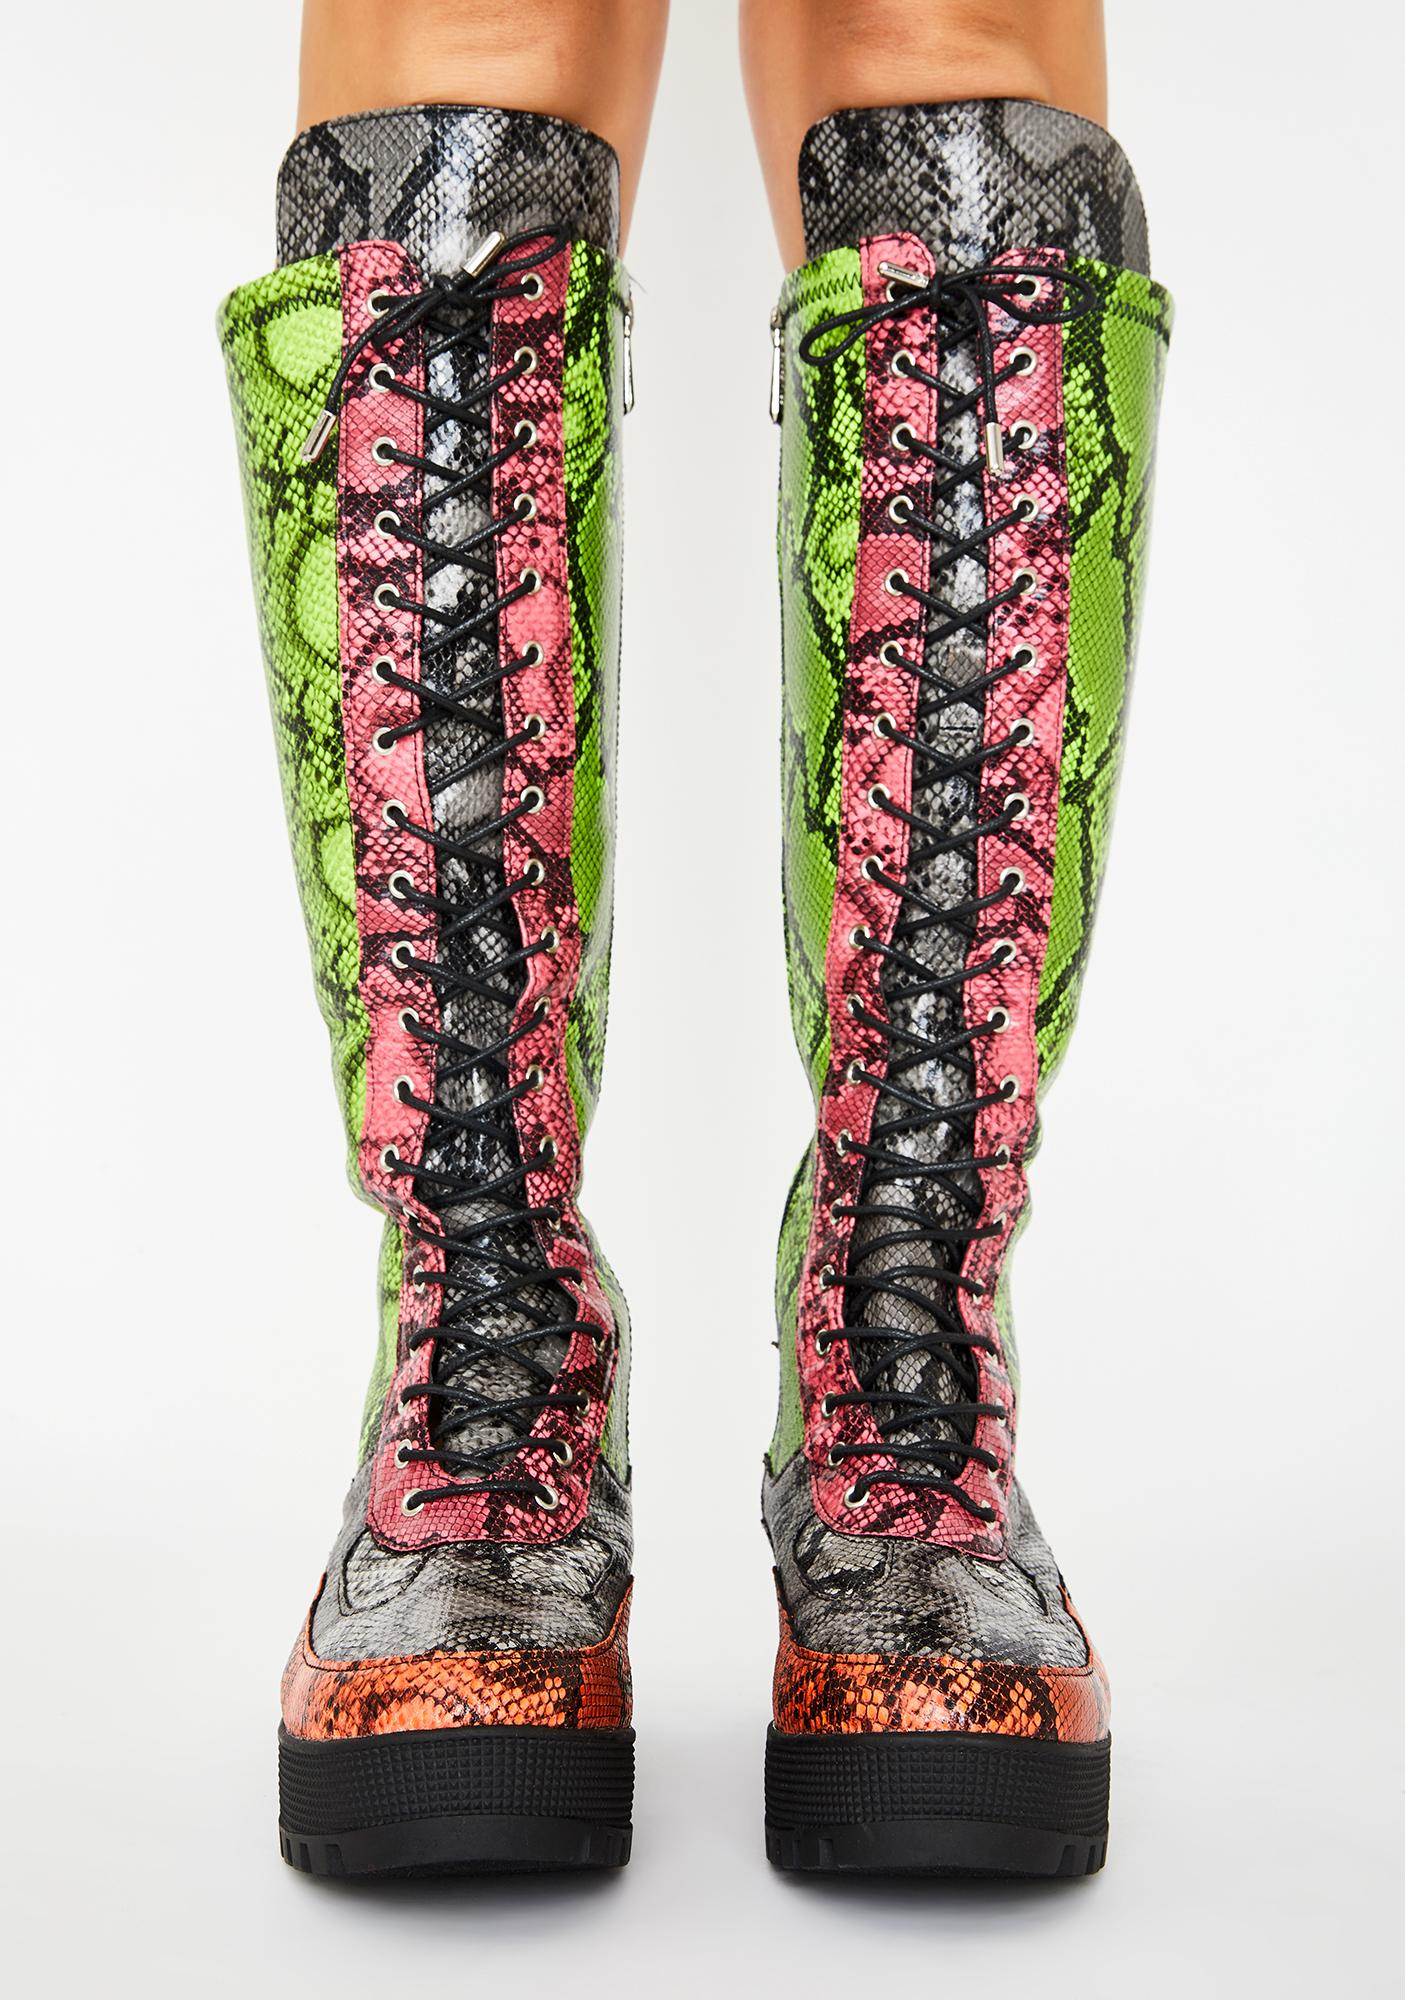 Venom Max Energy Knee High Boots